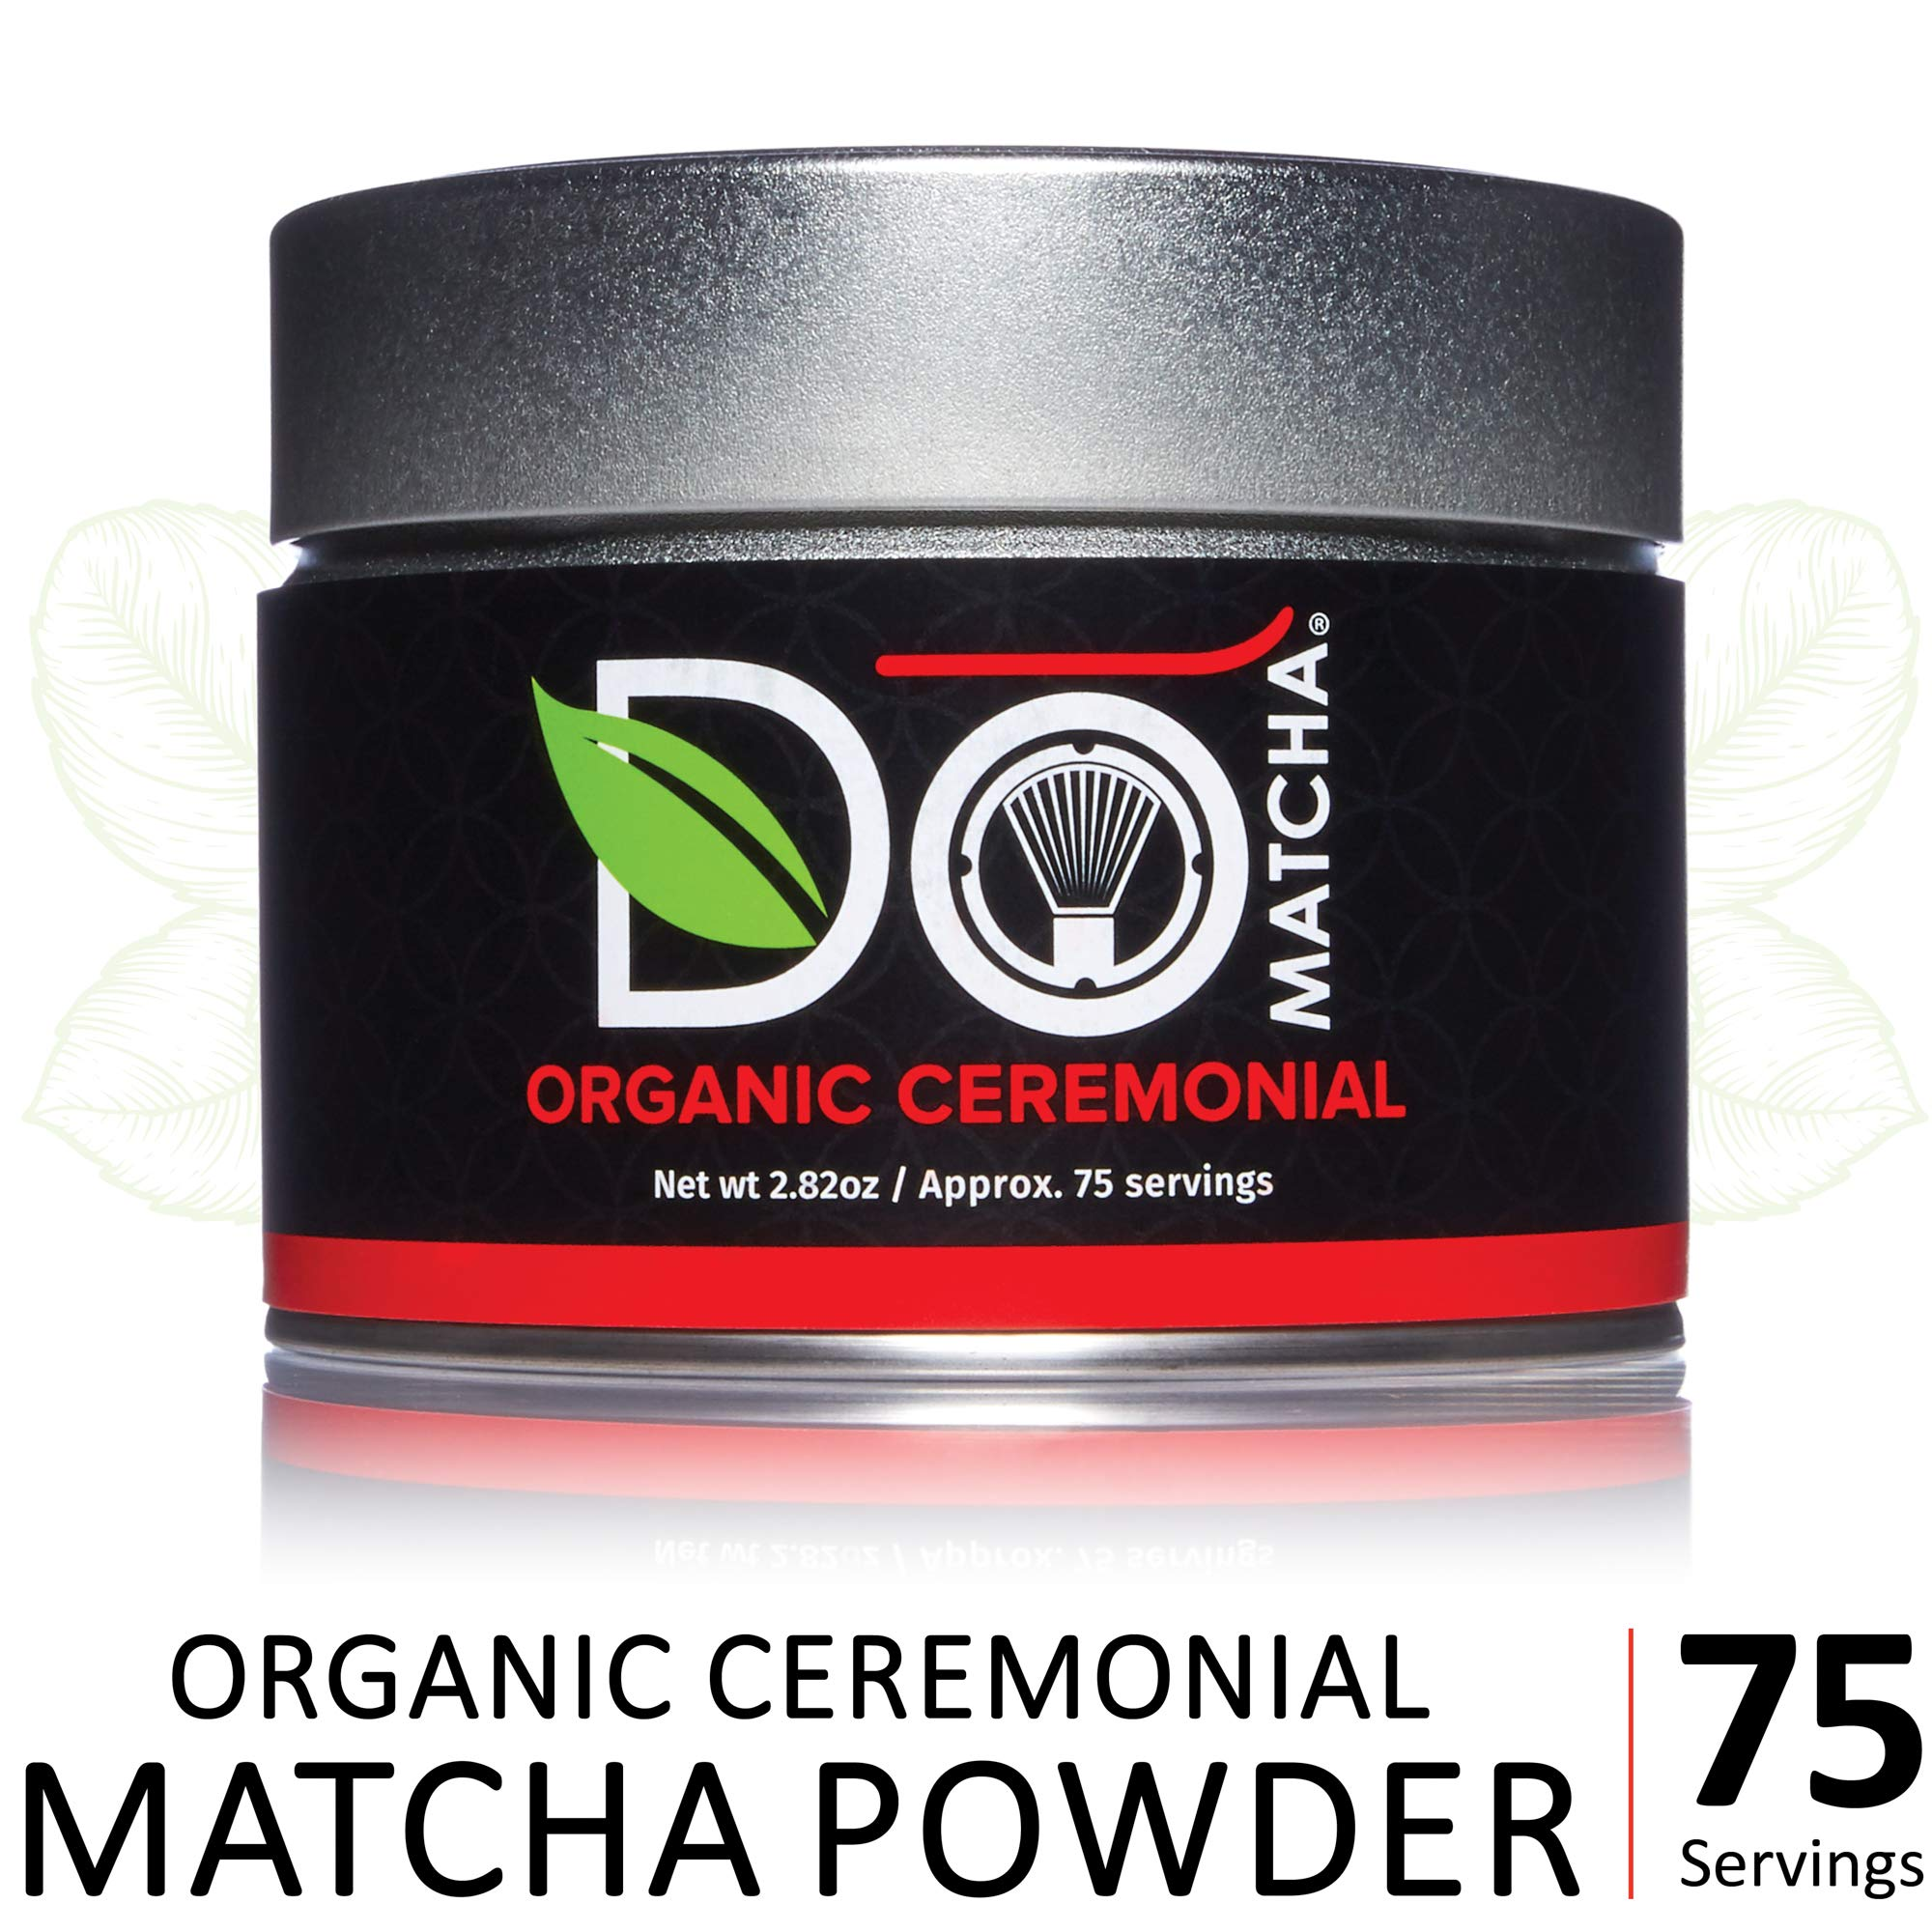 DoMatcha - Organic Ceremonial Matcha Powder, Natural Source of Antioxidants, Caffeine, and L-Theanine, Promotes Focus and Relaxation, 75 Servings (2.82 oz)